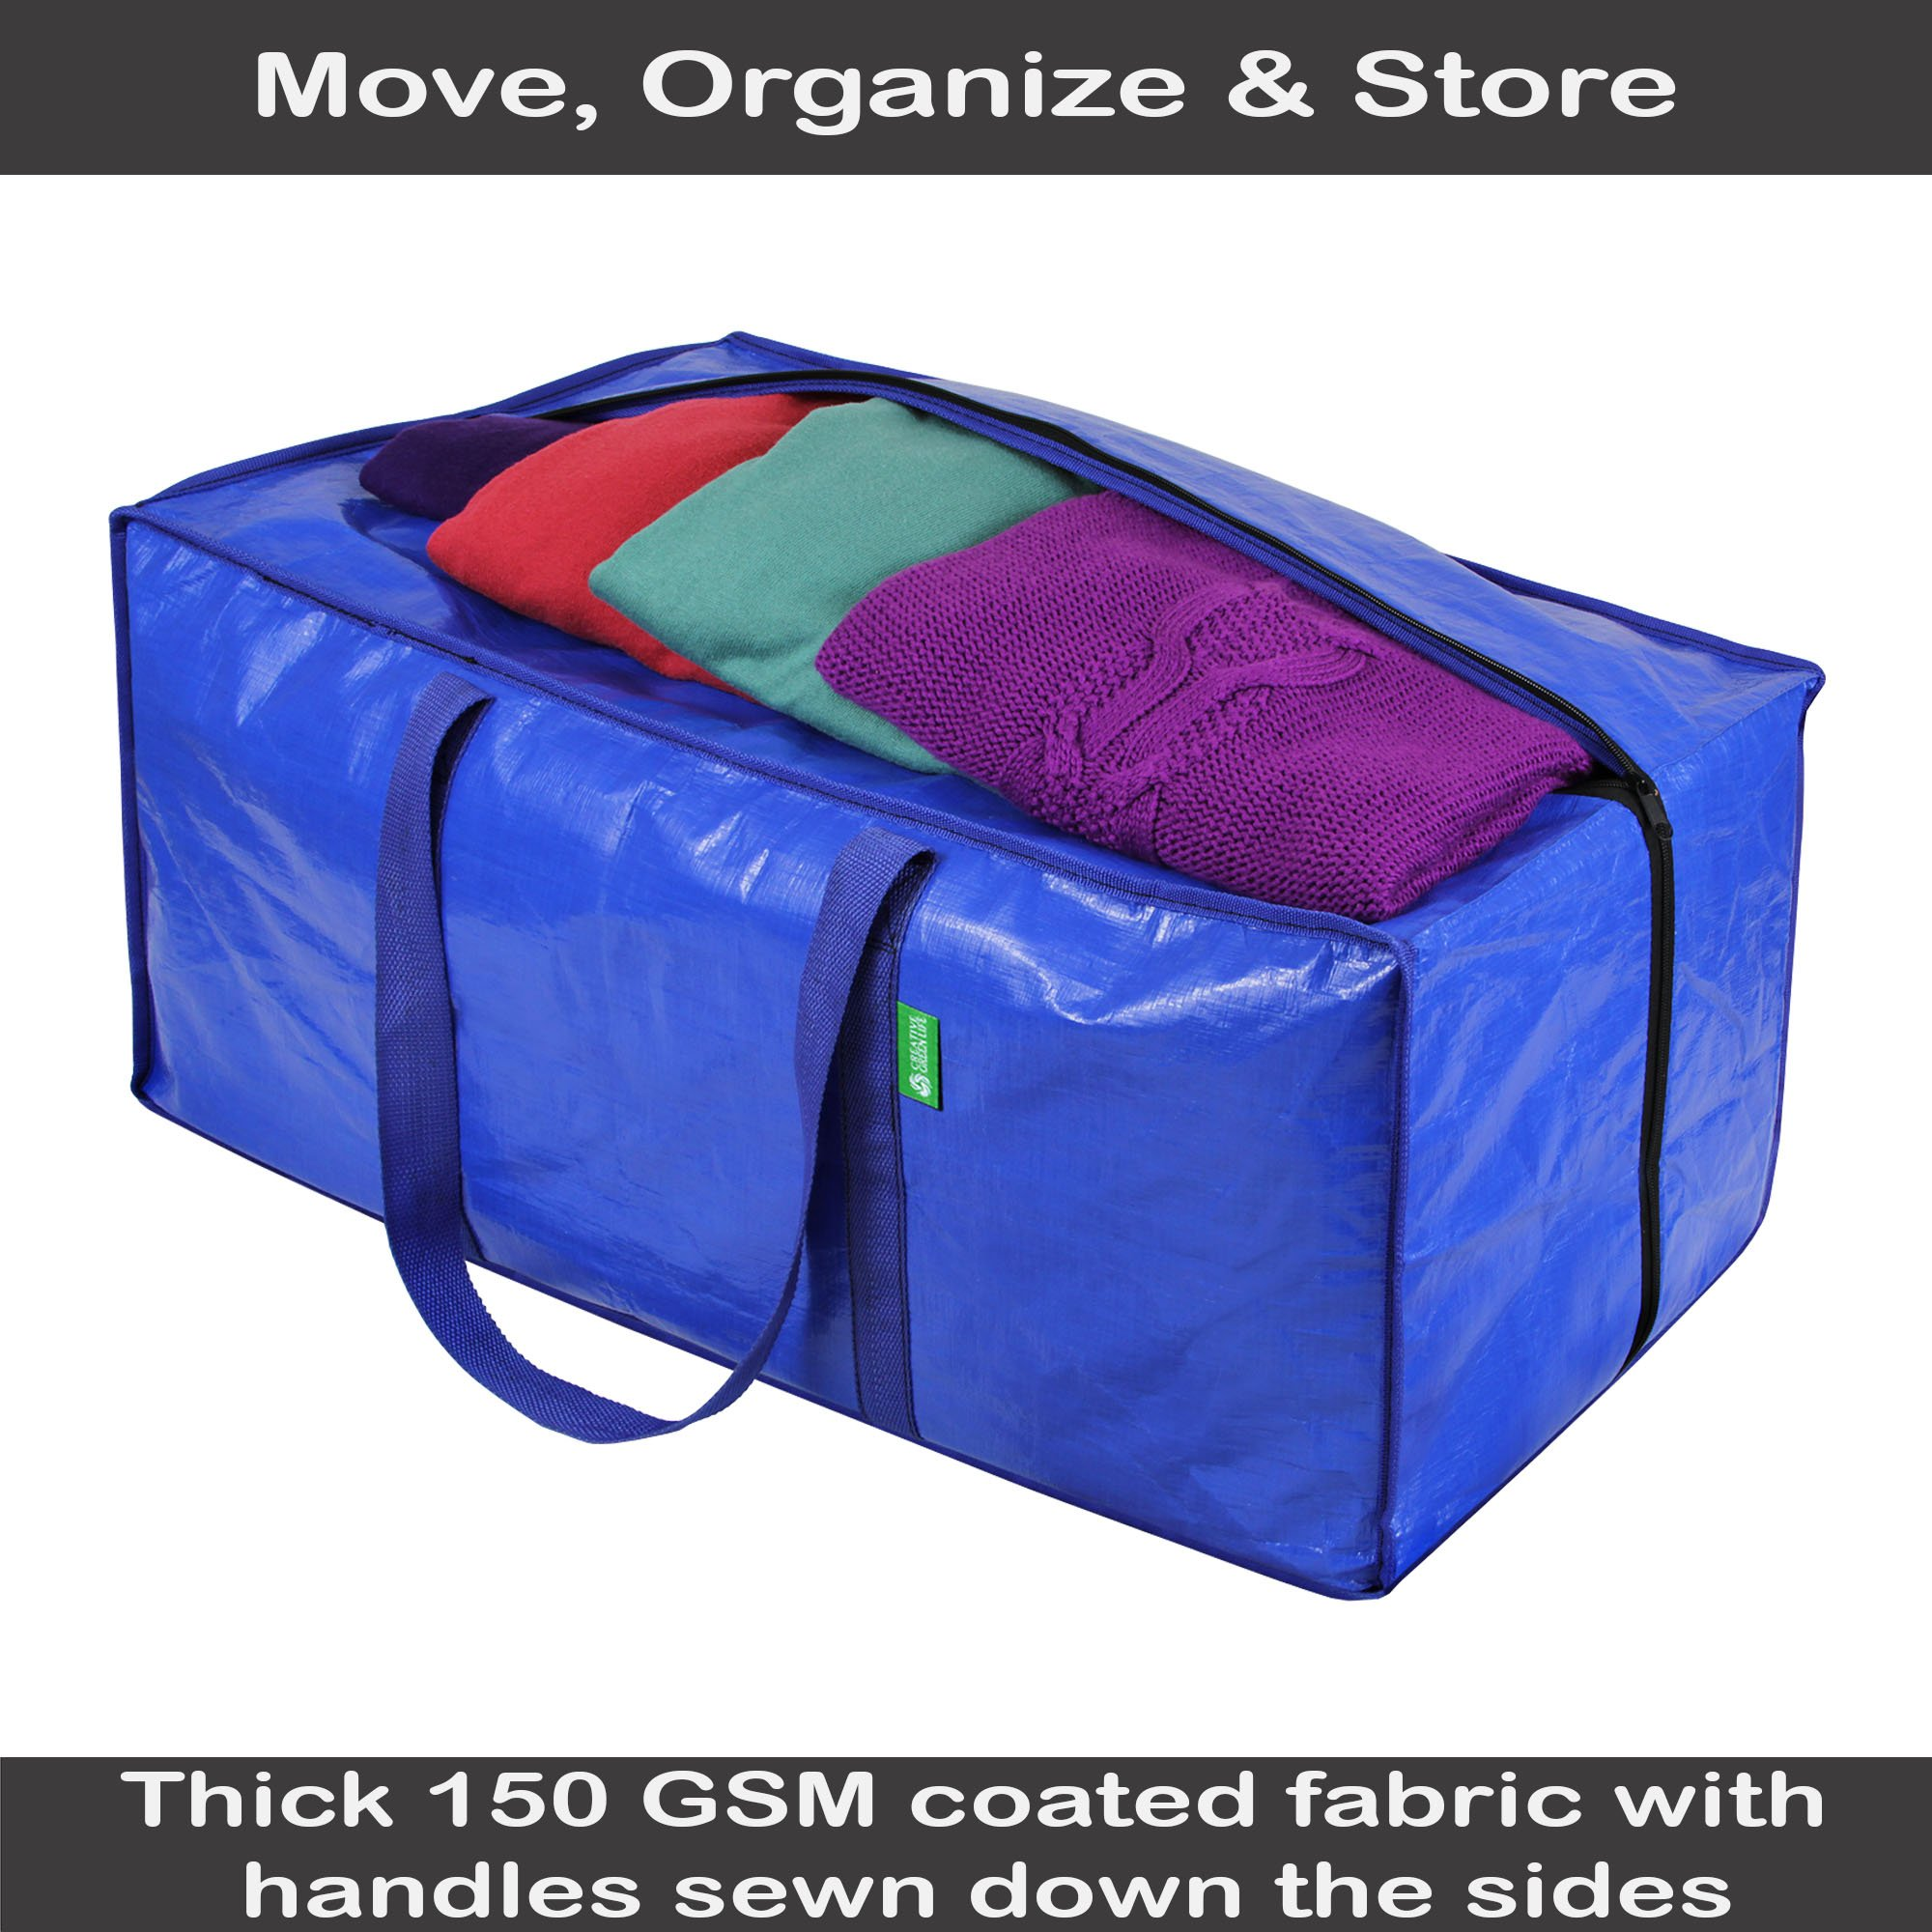 Storage and Moving Bag Set with Zipper Closure (8 Pack). Extra-large, Heavy Duty, Thick Oversized Wardrobe Totes. Bins for Clothing, Comforters, Blankets, Dorm Room Essentials, Decorations, Supplies by Creative Green Life (Image #3)